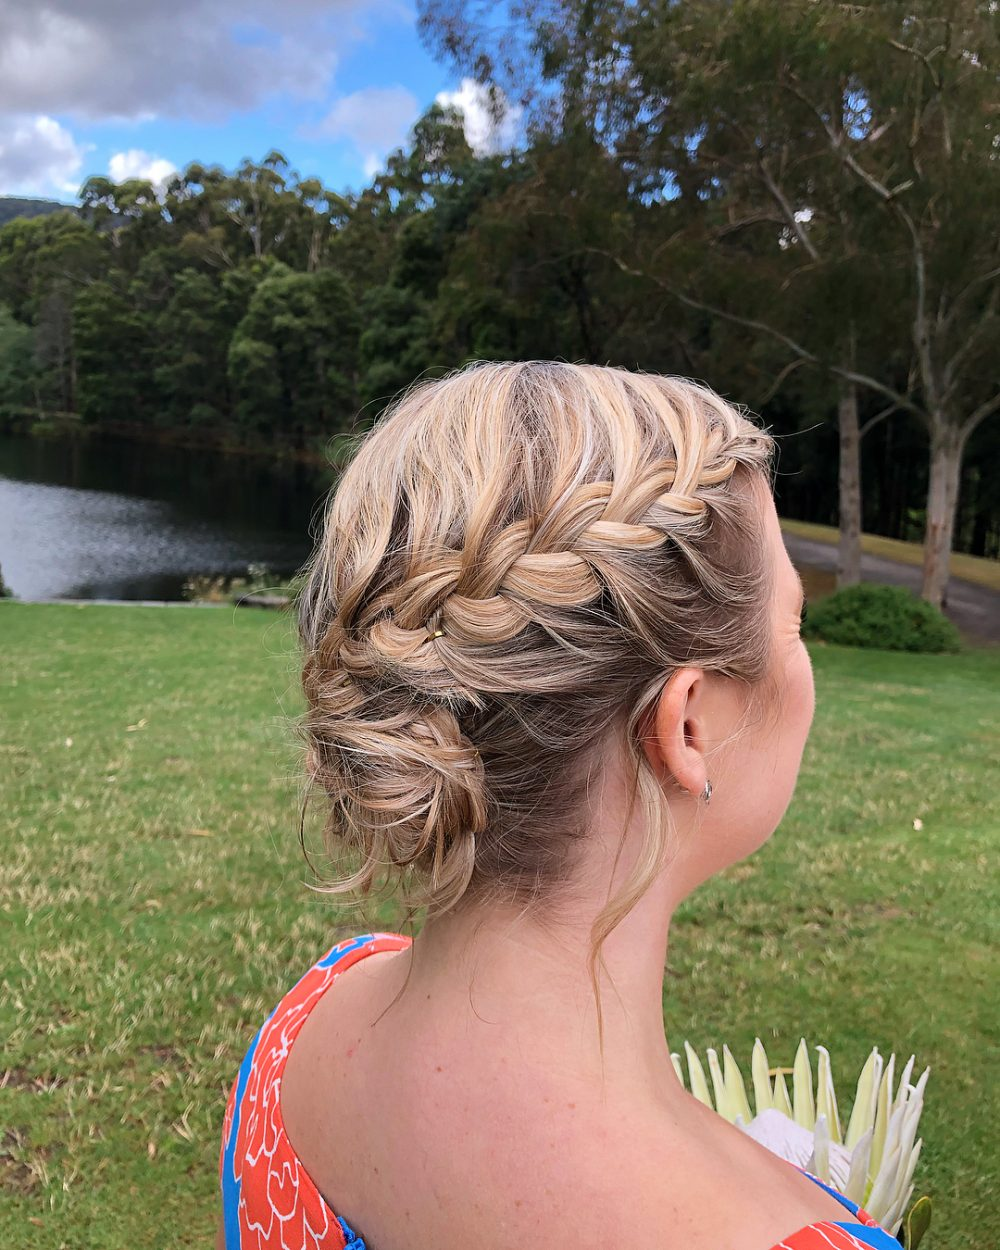 Boho with Mix Braids and Loose Curls hairstyle